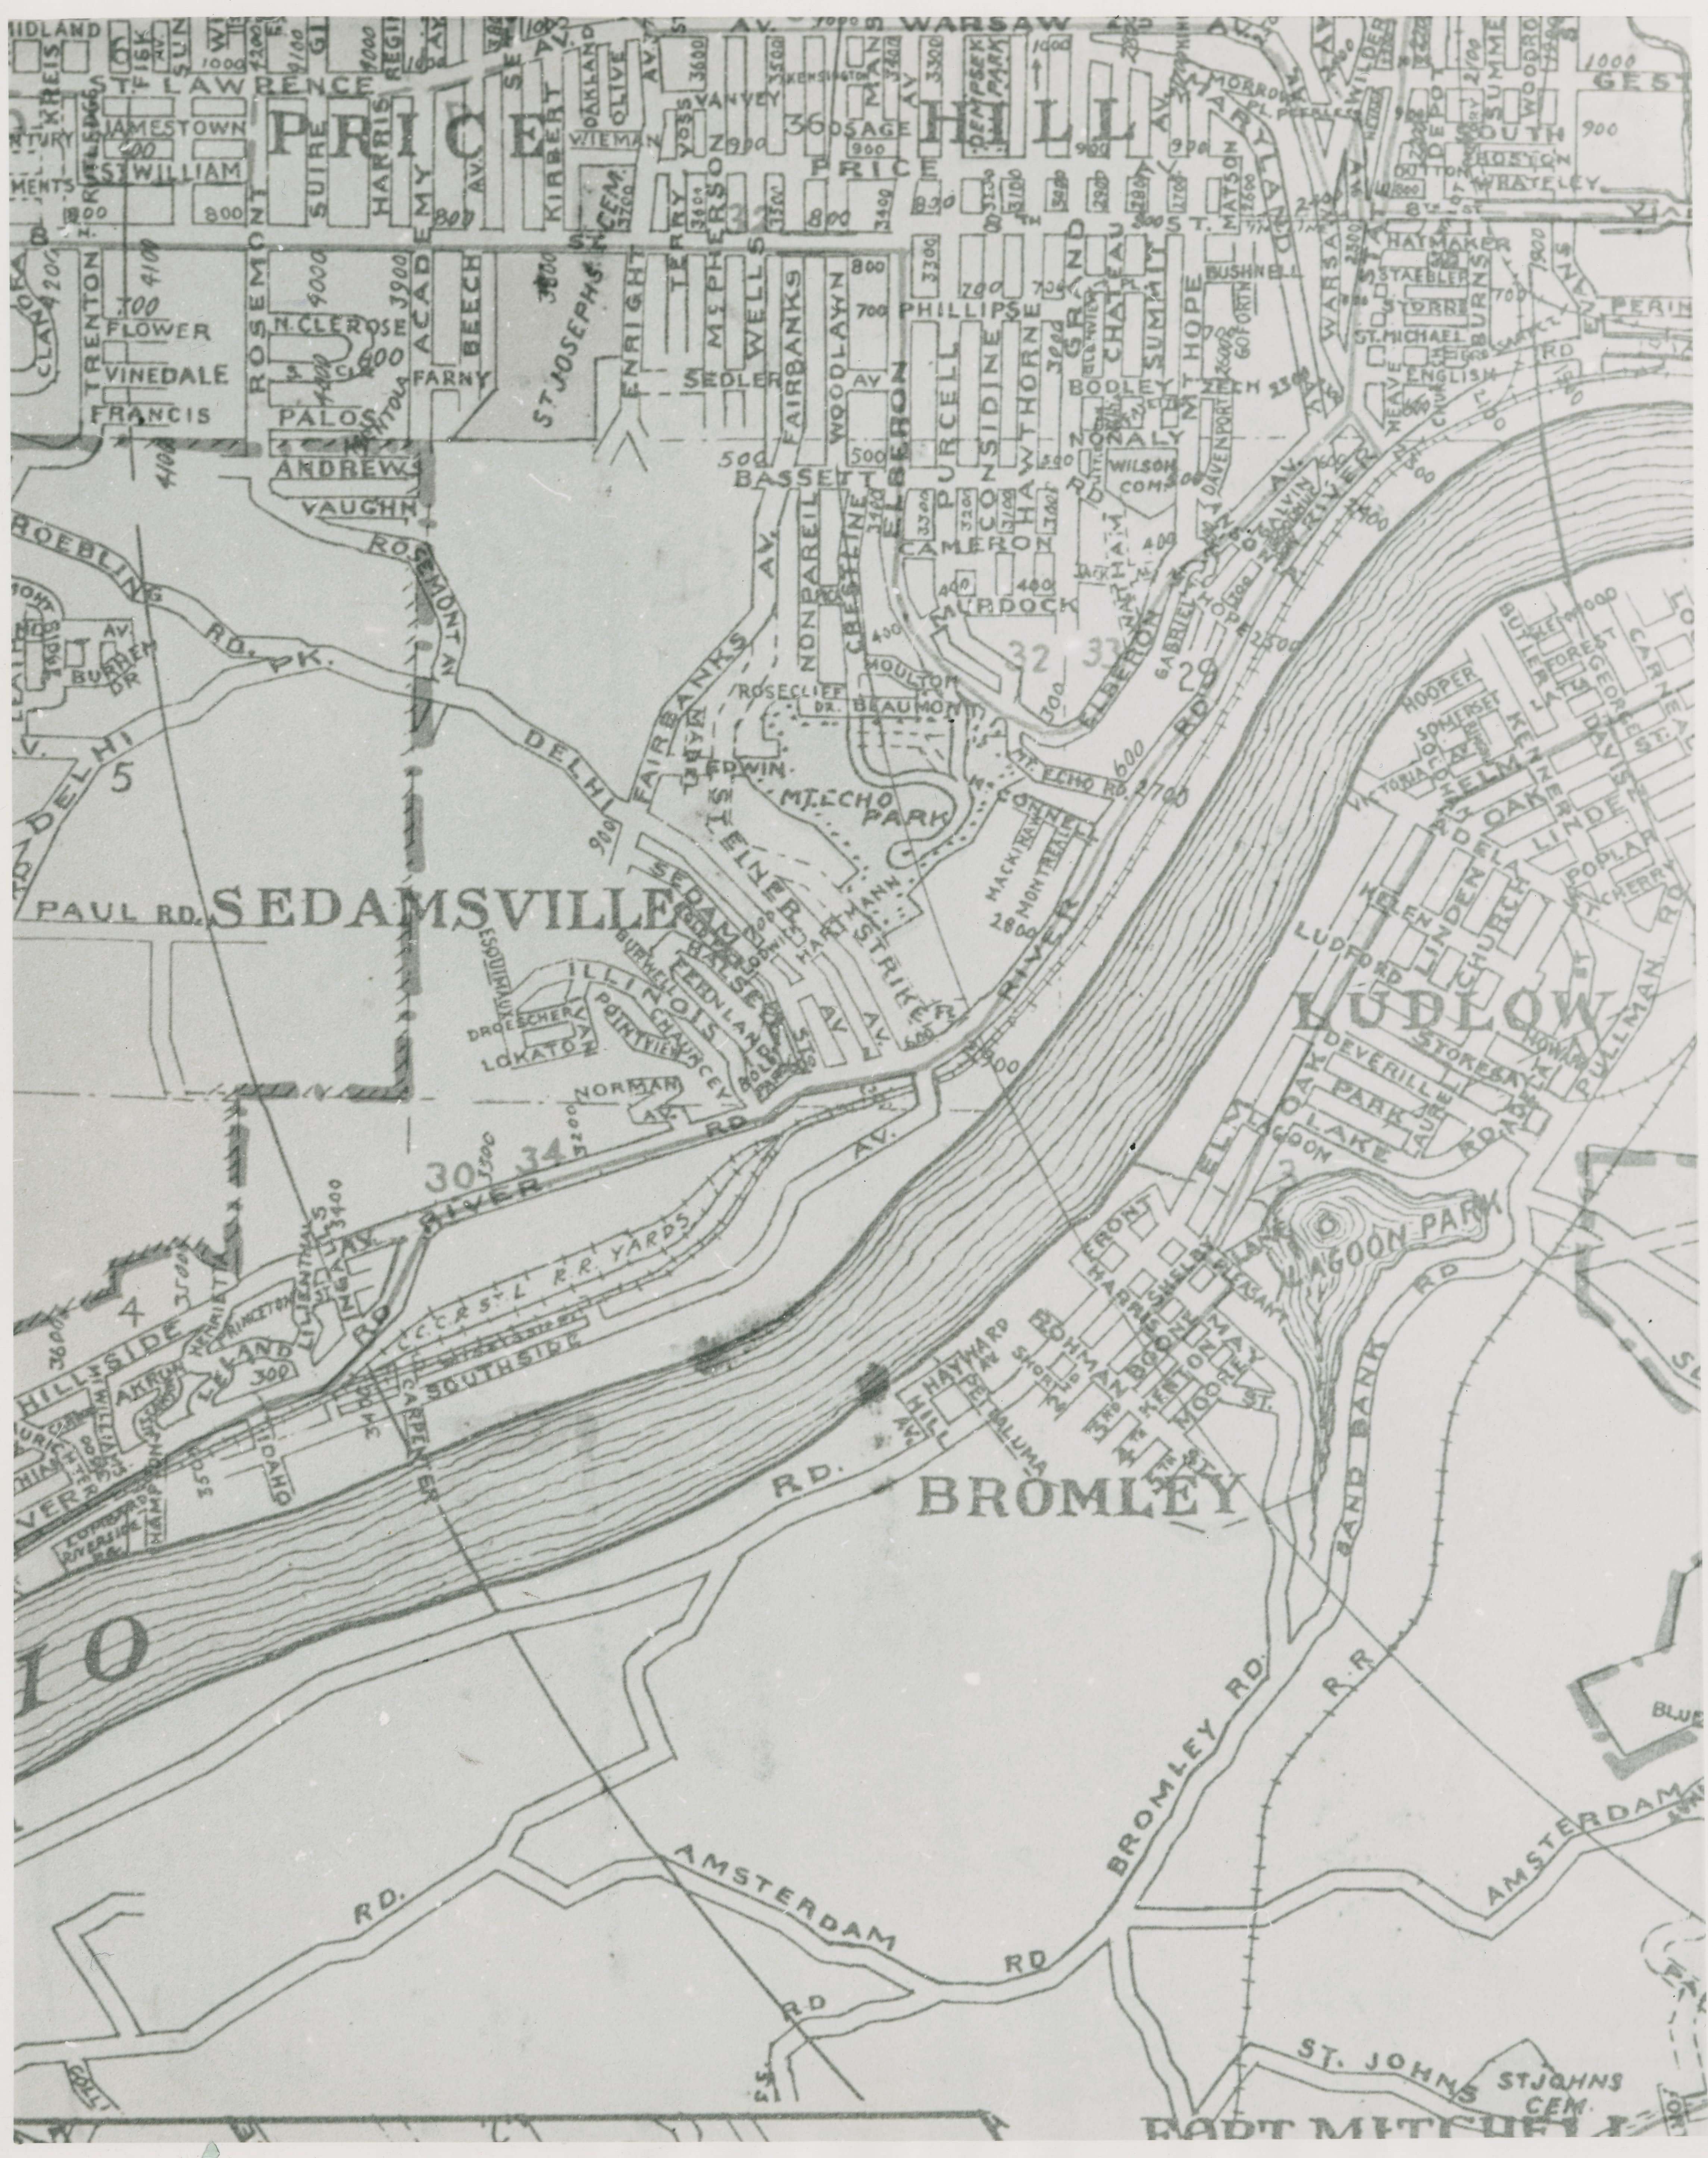 Map of Sedamsville Near Cincinnati courtesy of Ohio History Connection